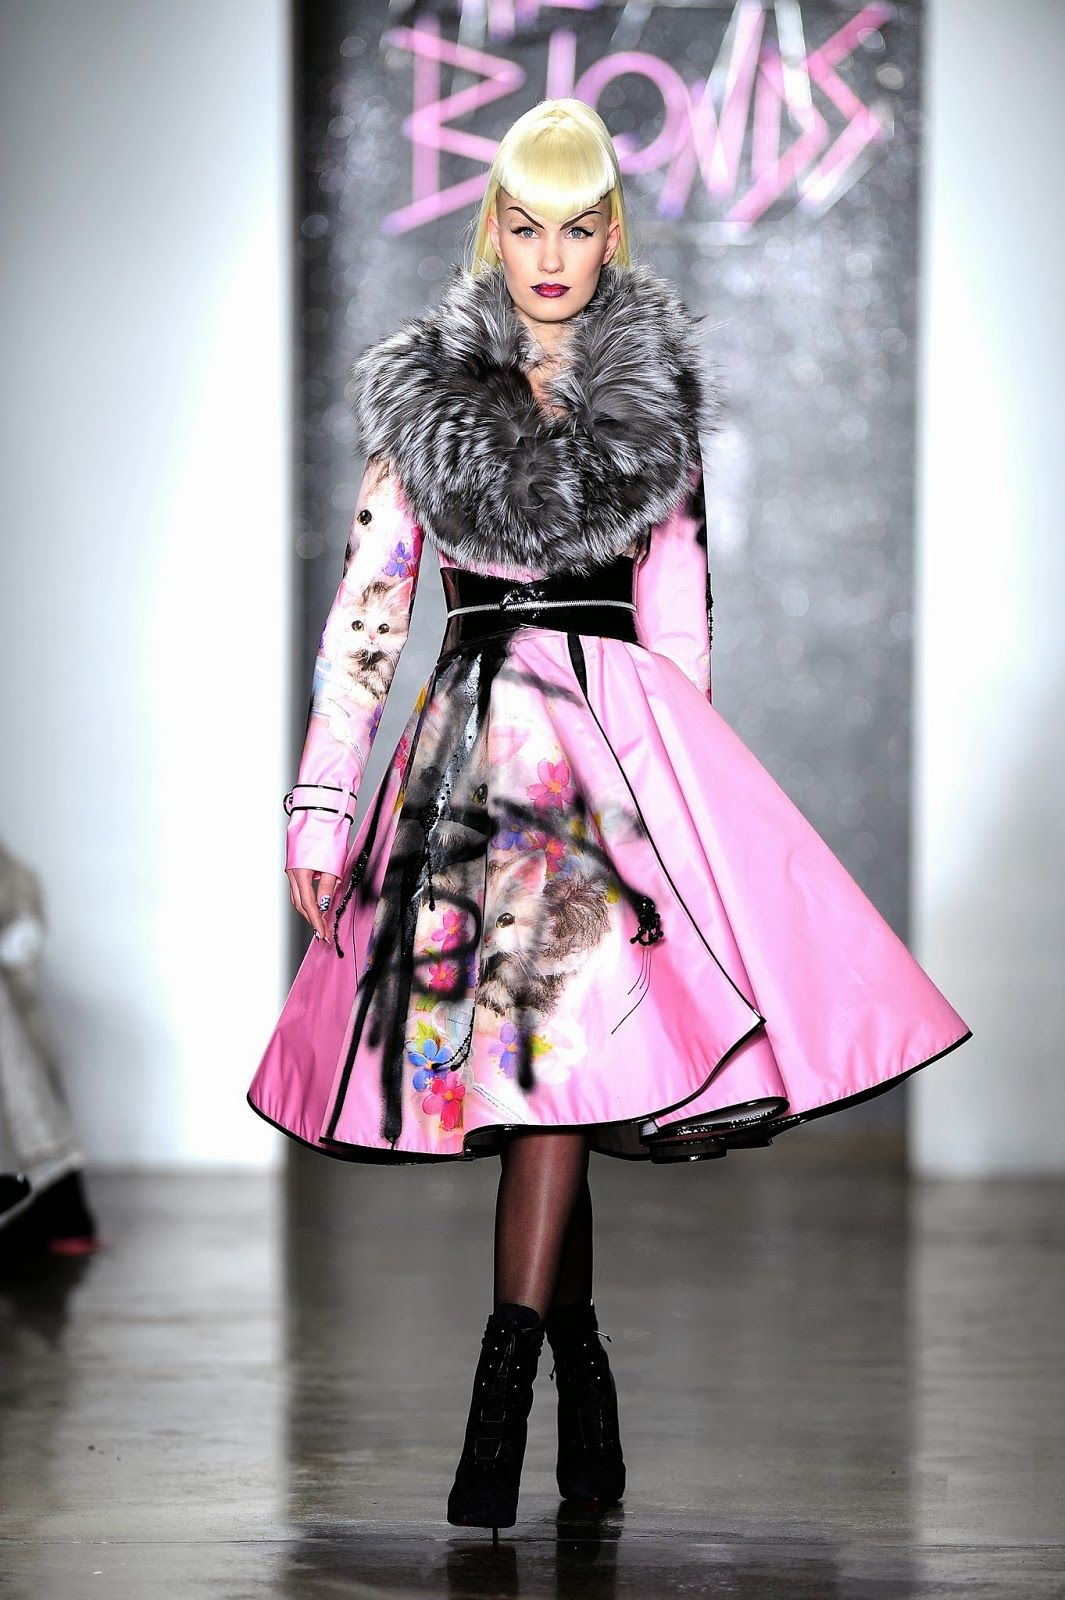 Nailed It: Vixens Rule The Runway At The Blondes Fall/Winter 2014 Show